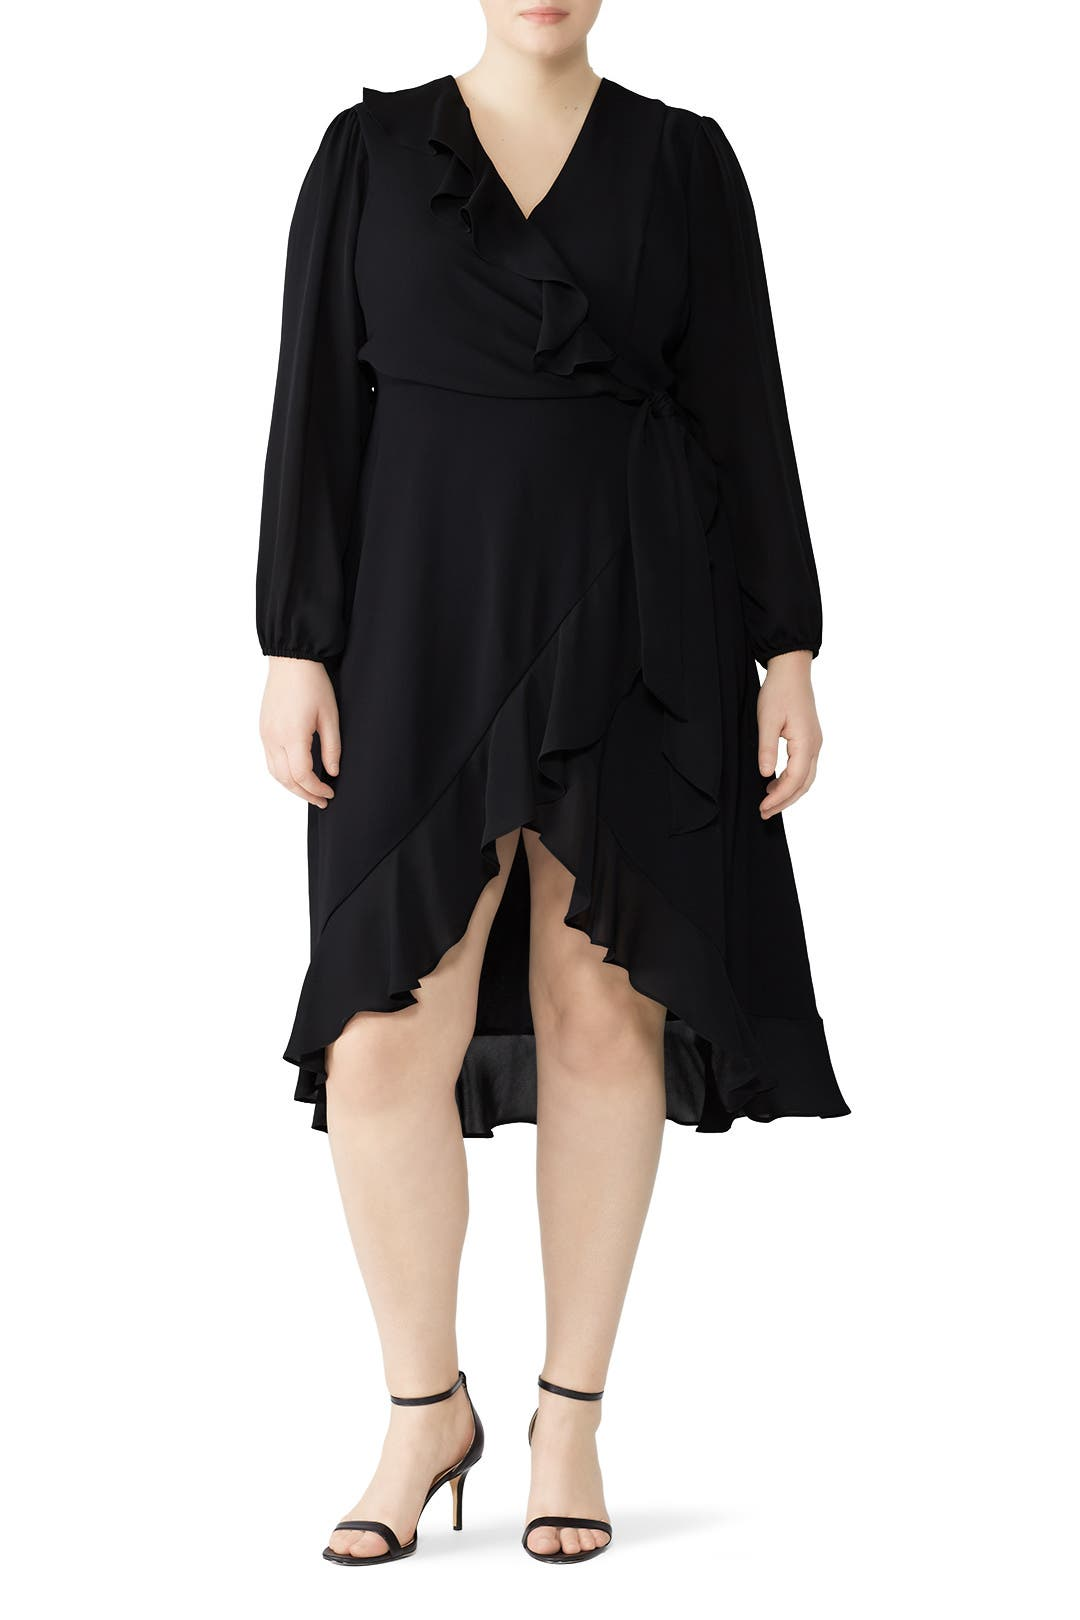 cab82d2696a Thorn Combo Dress by Parker for  60